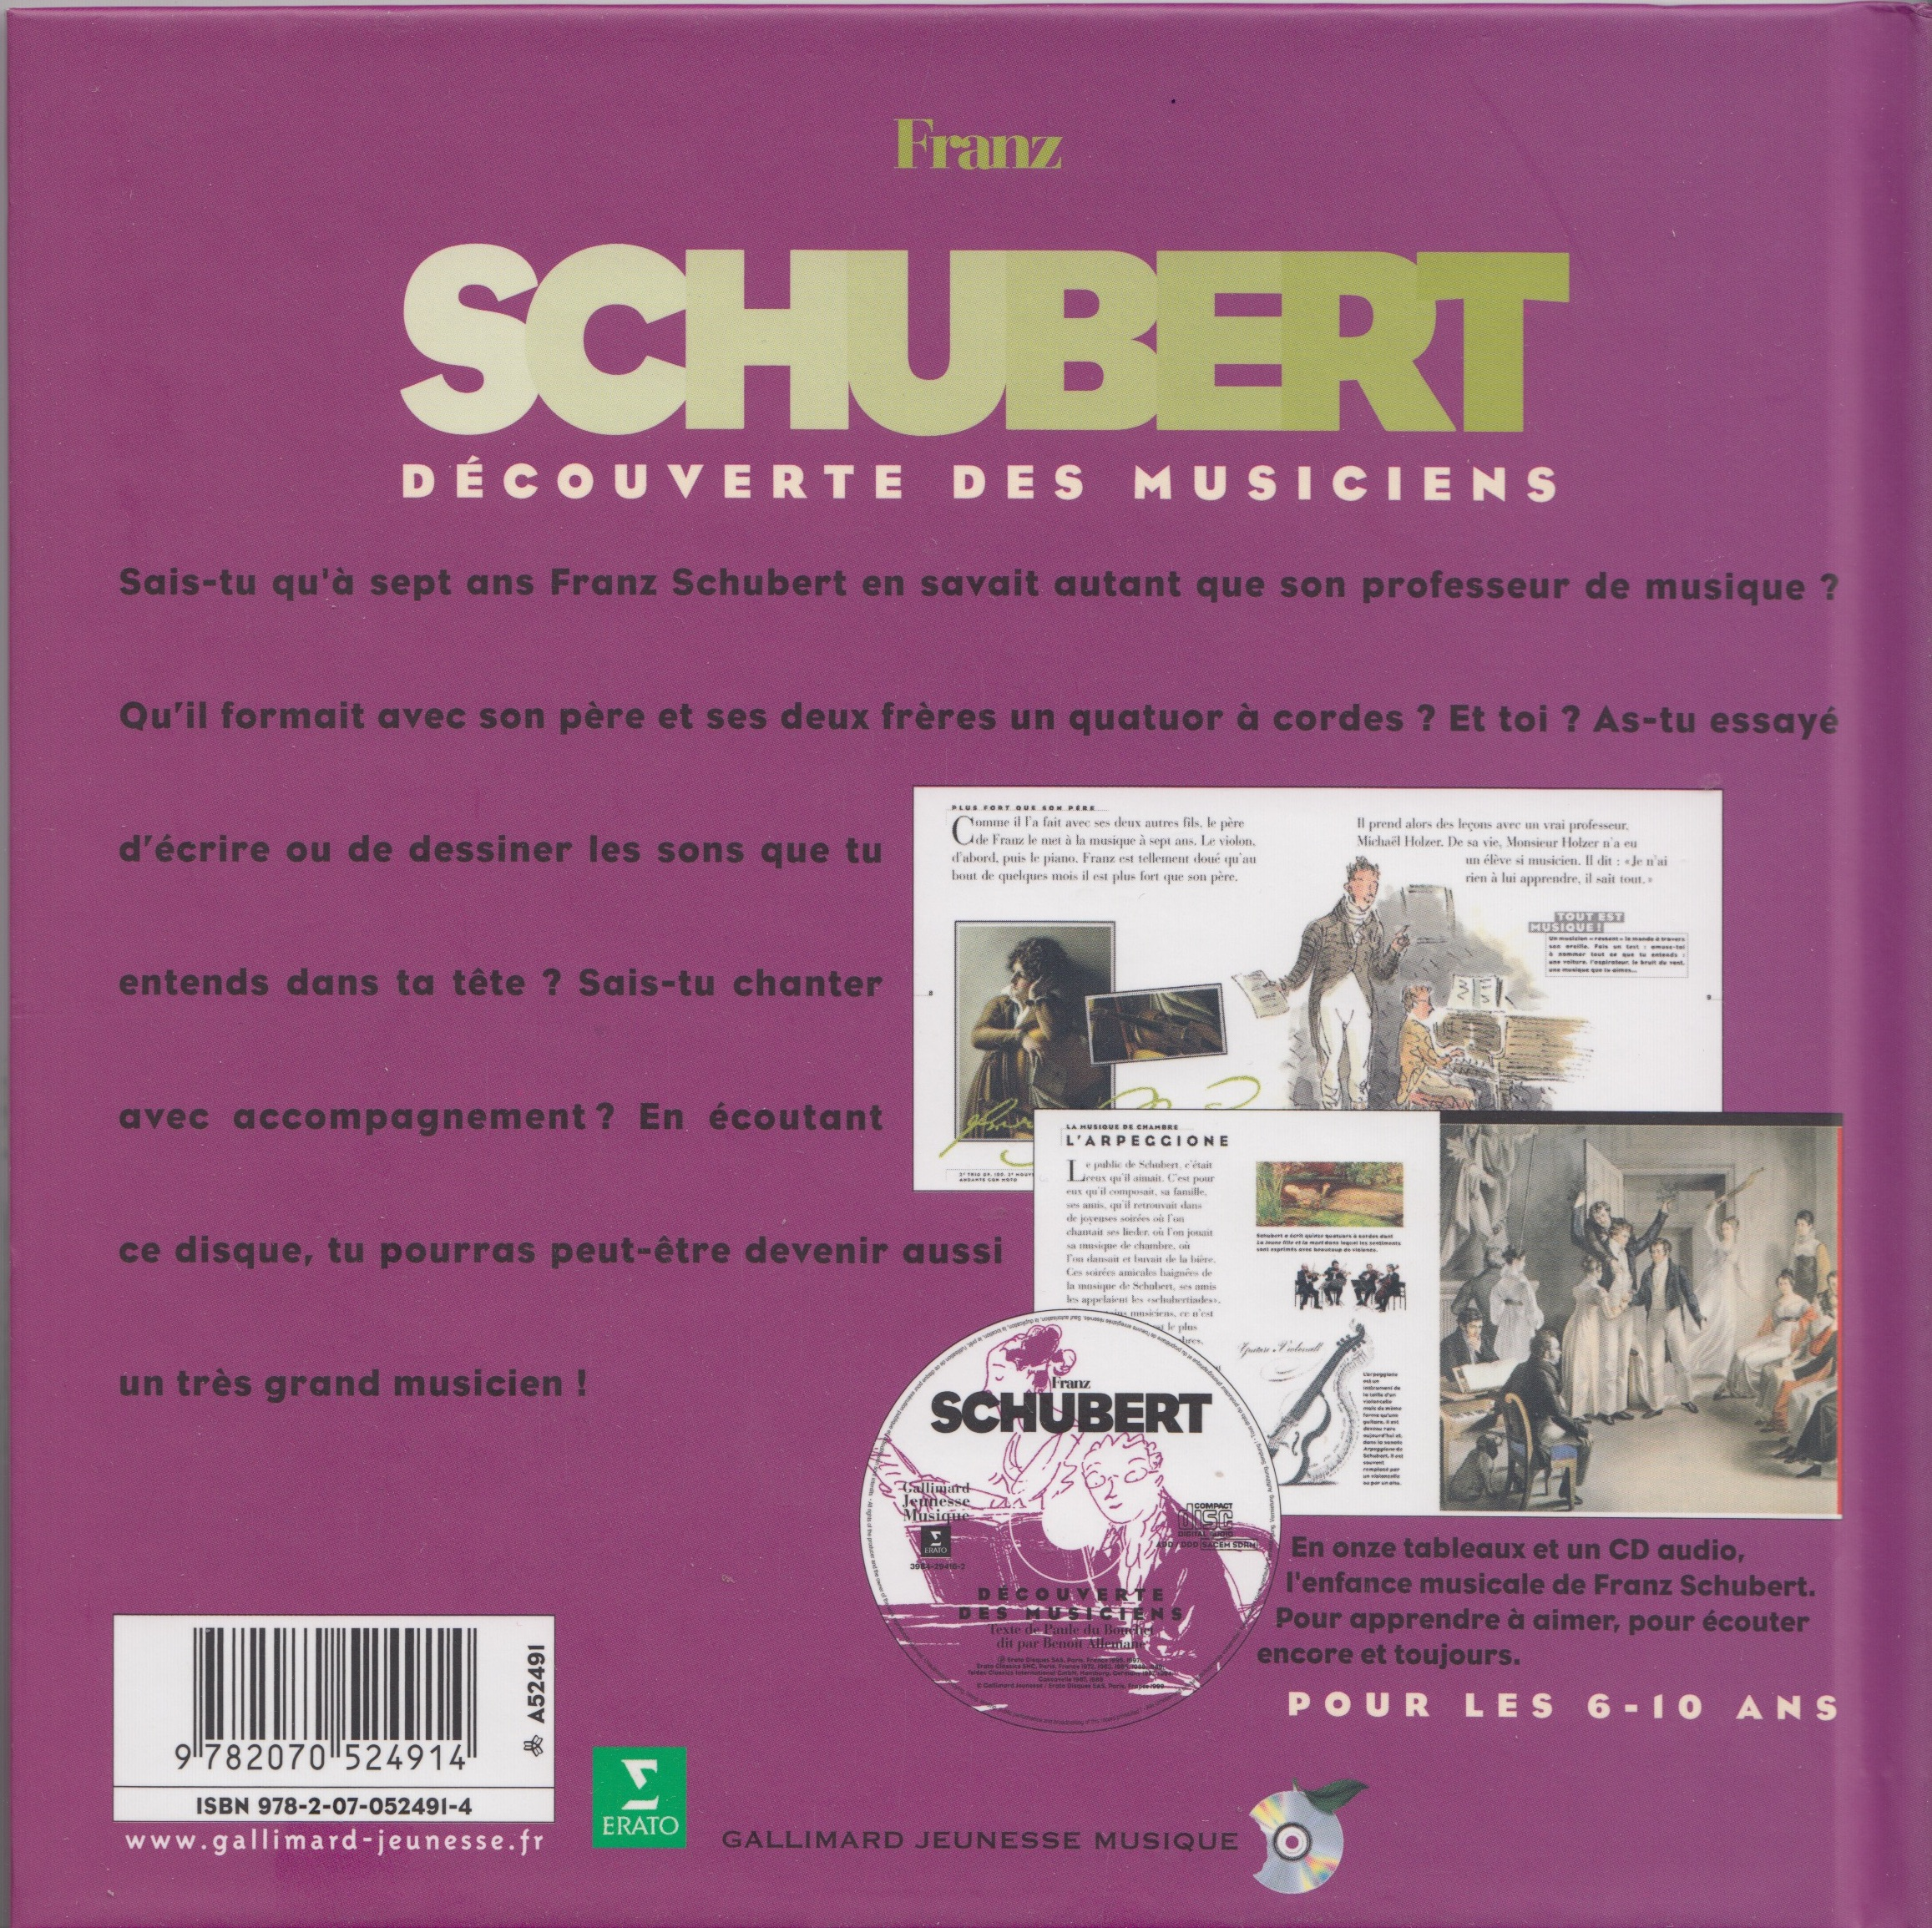 Specimens Franz Schubert